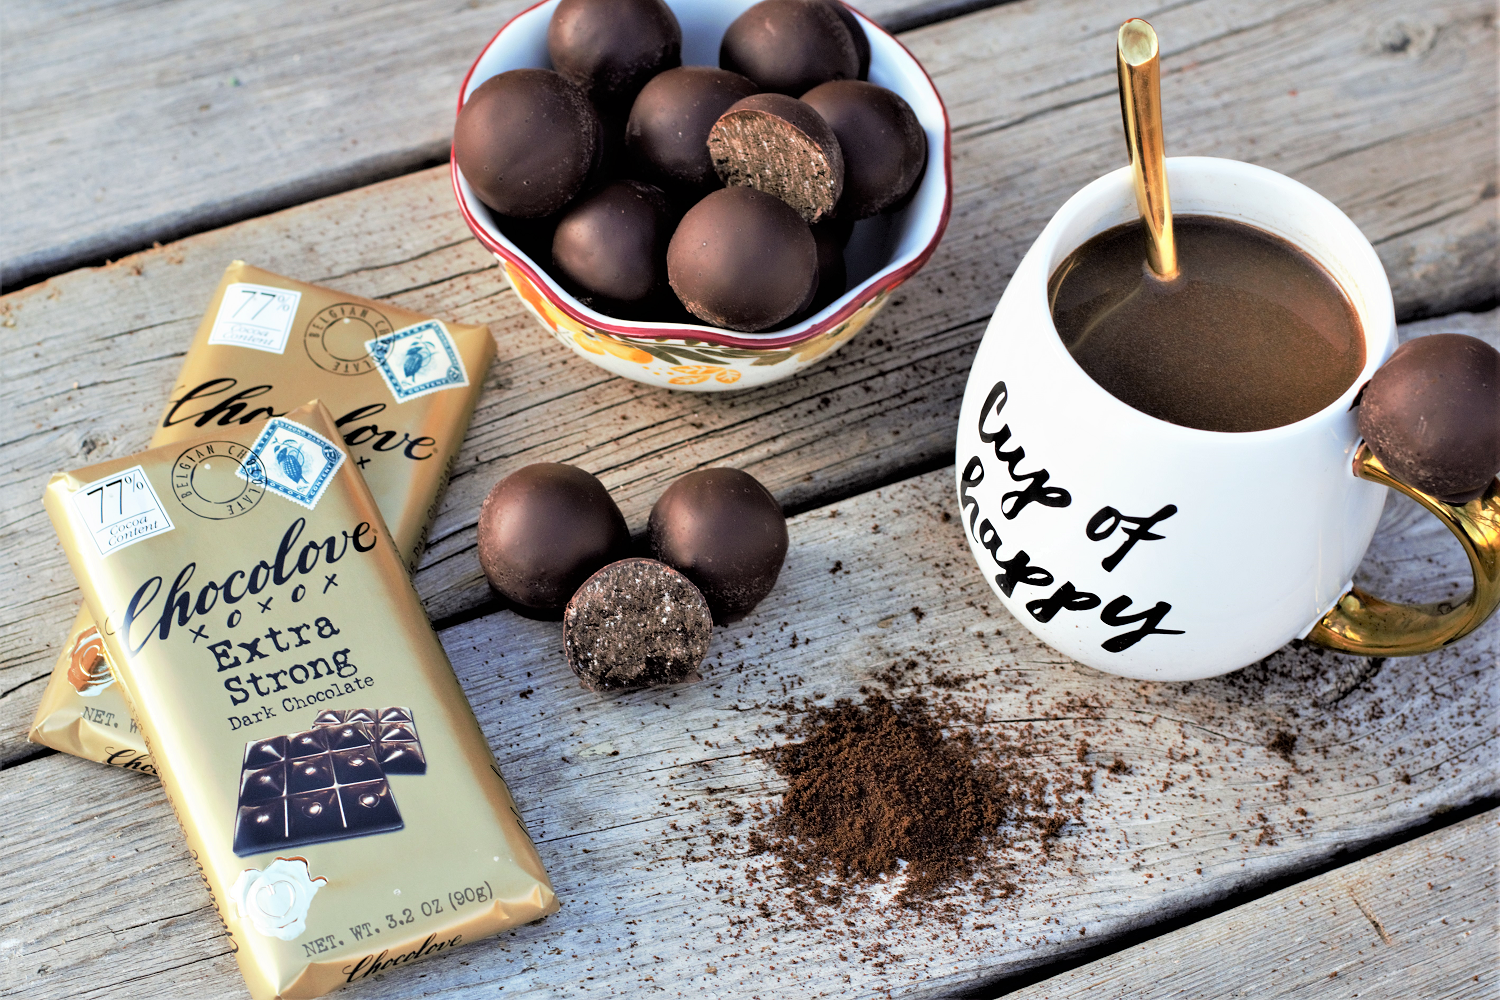 Just stir into hot water for a rich, comforting mocha latte with a full dose of espresso & thick coating of super dark chocolate - these couldn't be easier!